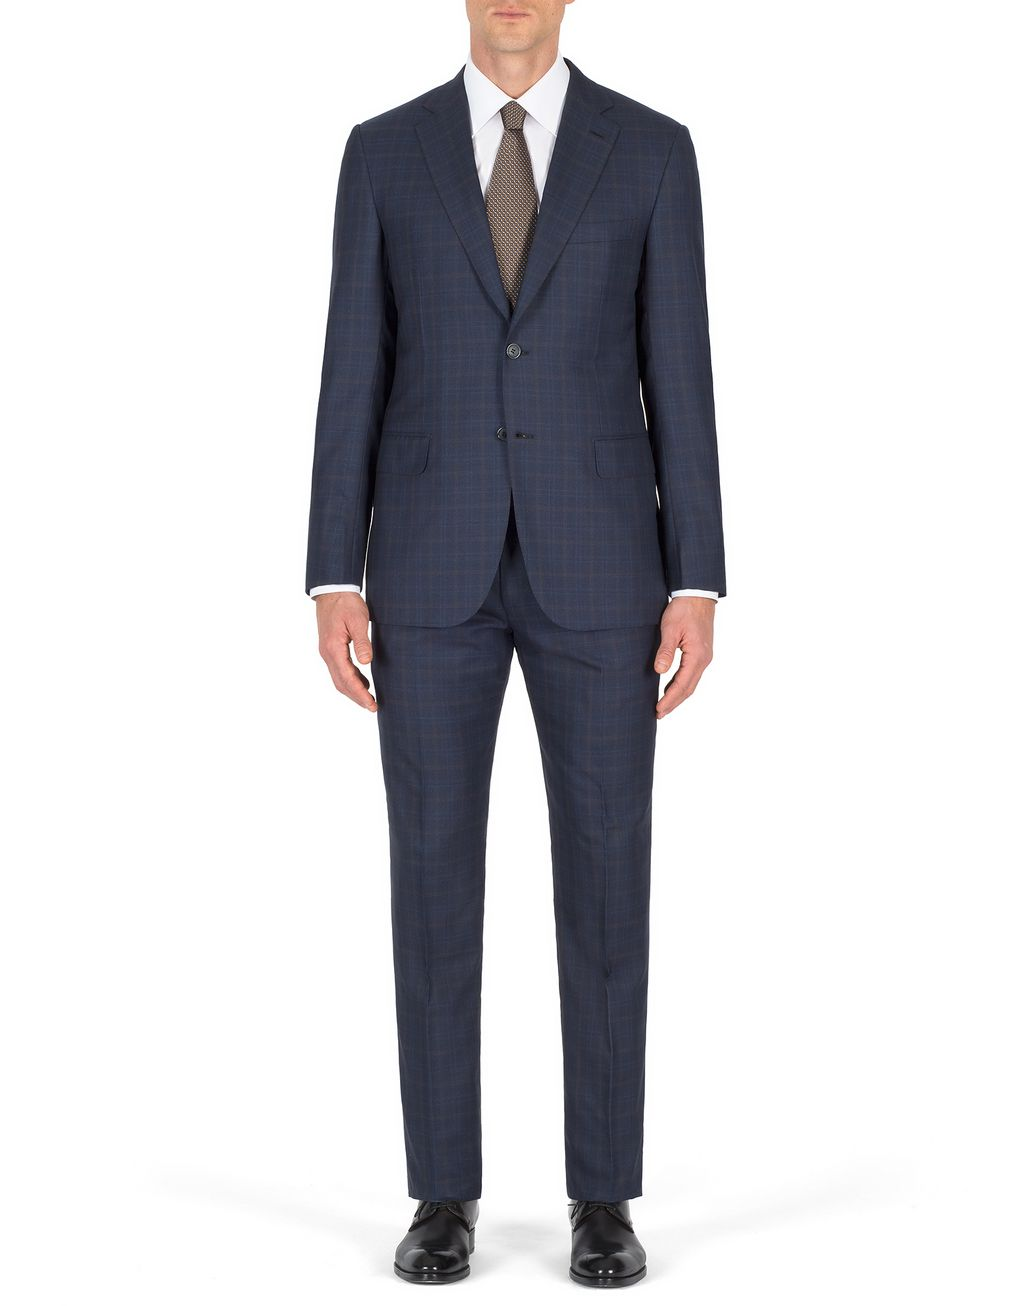 BRIONI Navy-Blue Subtle Check Brunico Suit Suits & Jackets U r